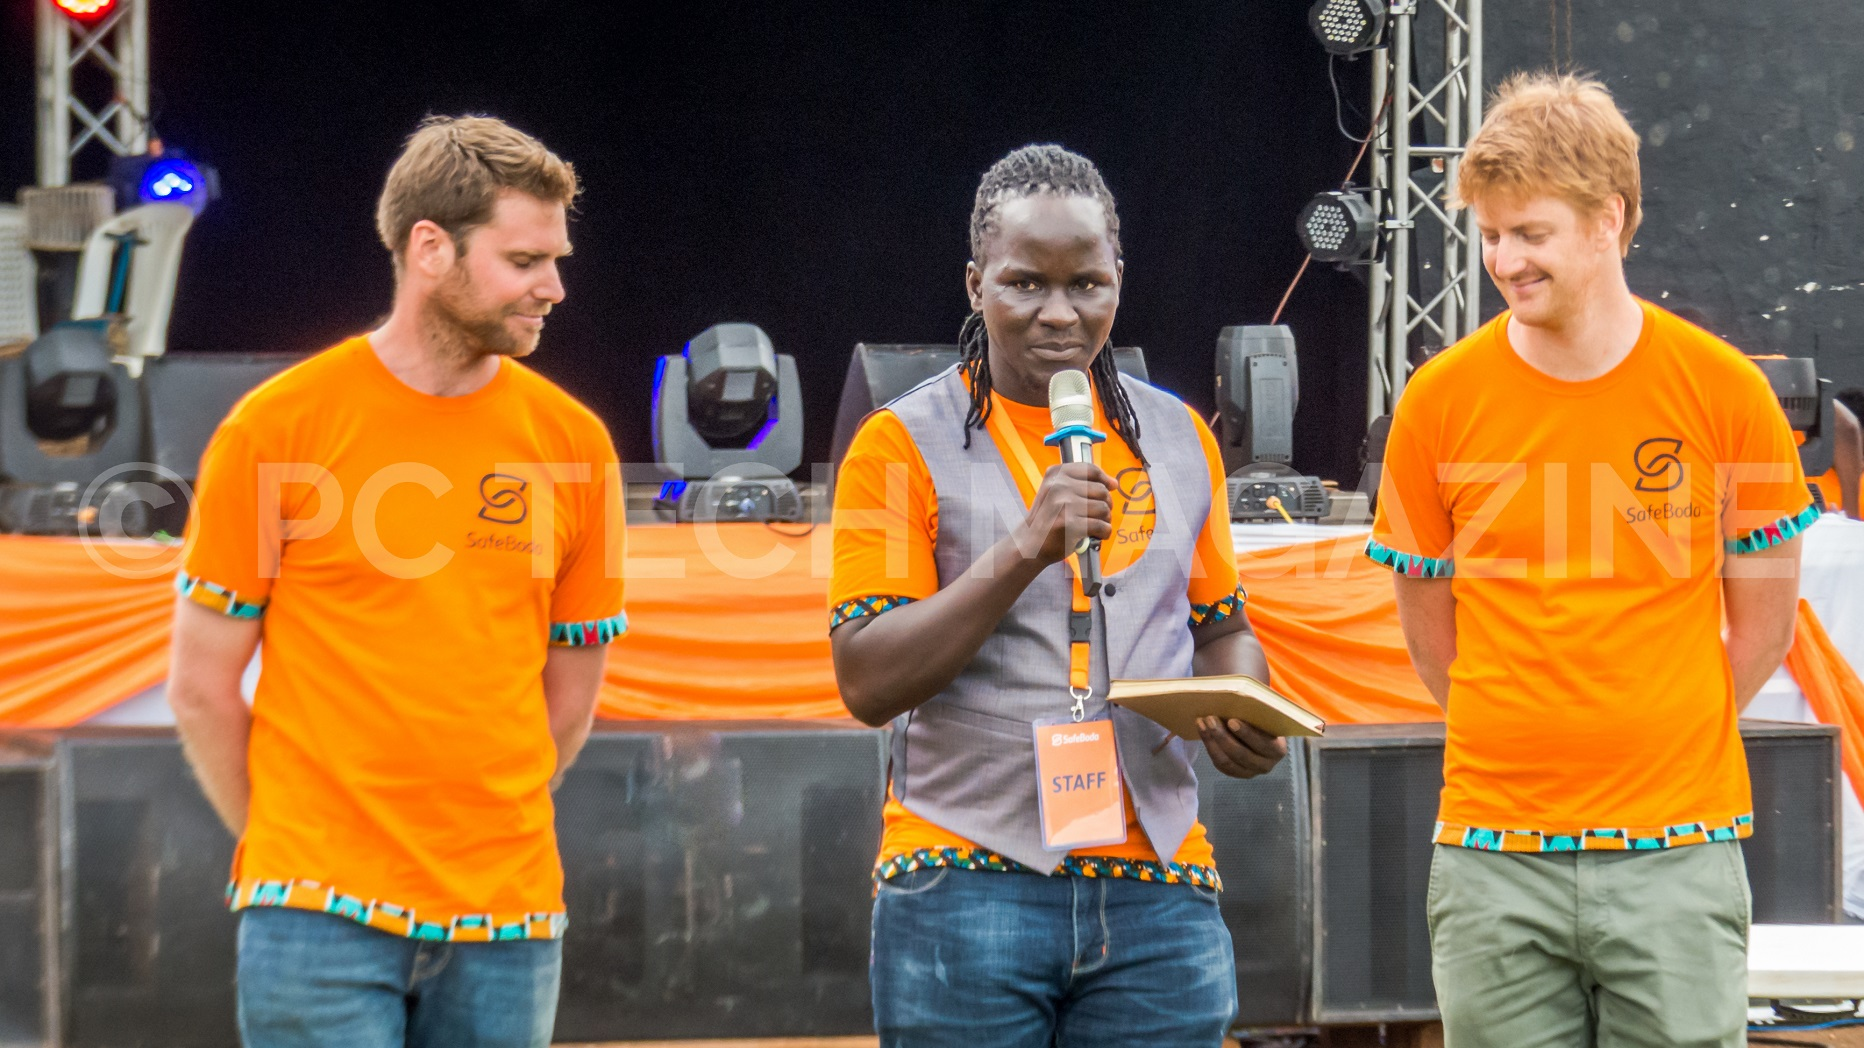 Ronald Amanyire, Secretary at National Road Safety Council— a body under the Ministry of Roads and Works speaking at the Safeboda bi-annual party at the Lugogo Cricket Oval in Kampala on Sunday 27th, January 2018.